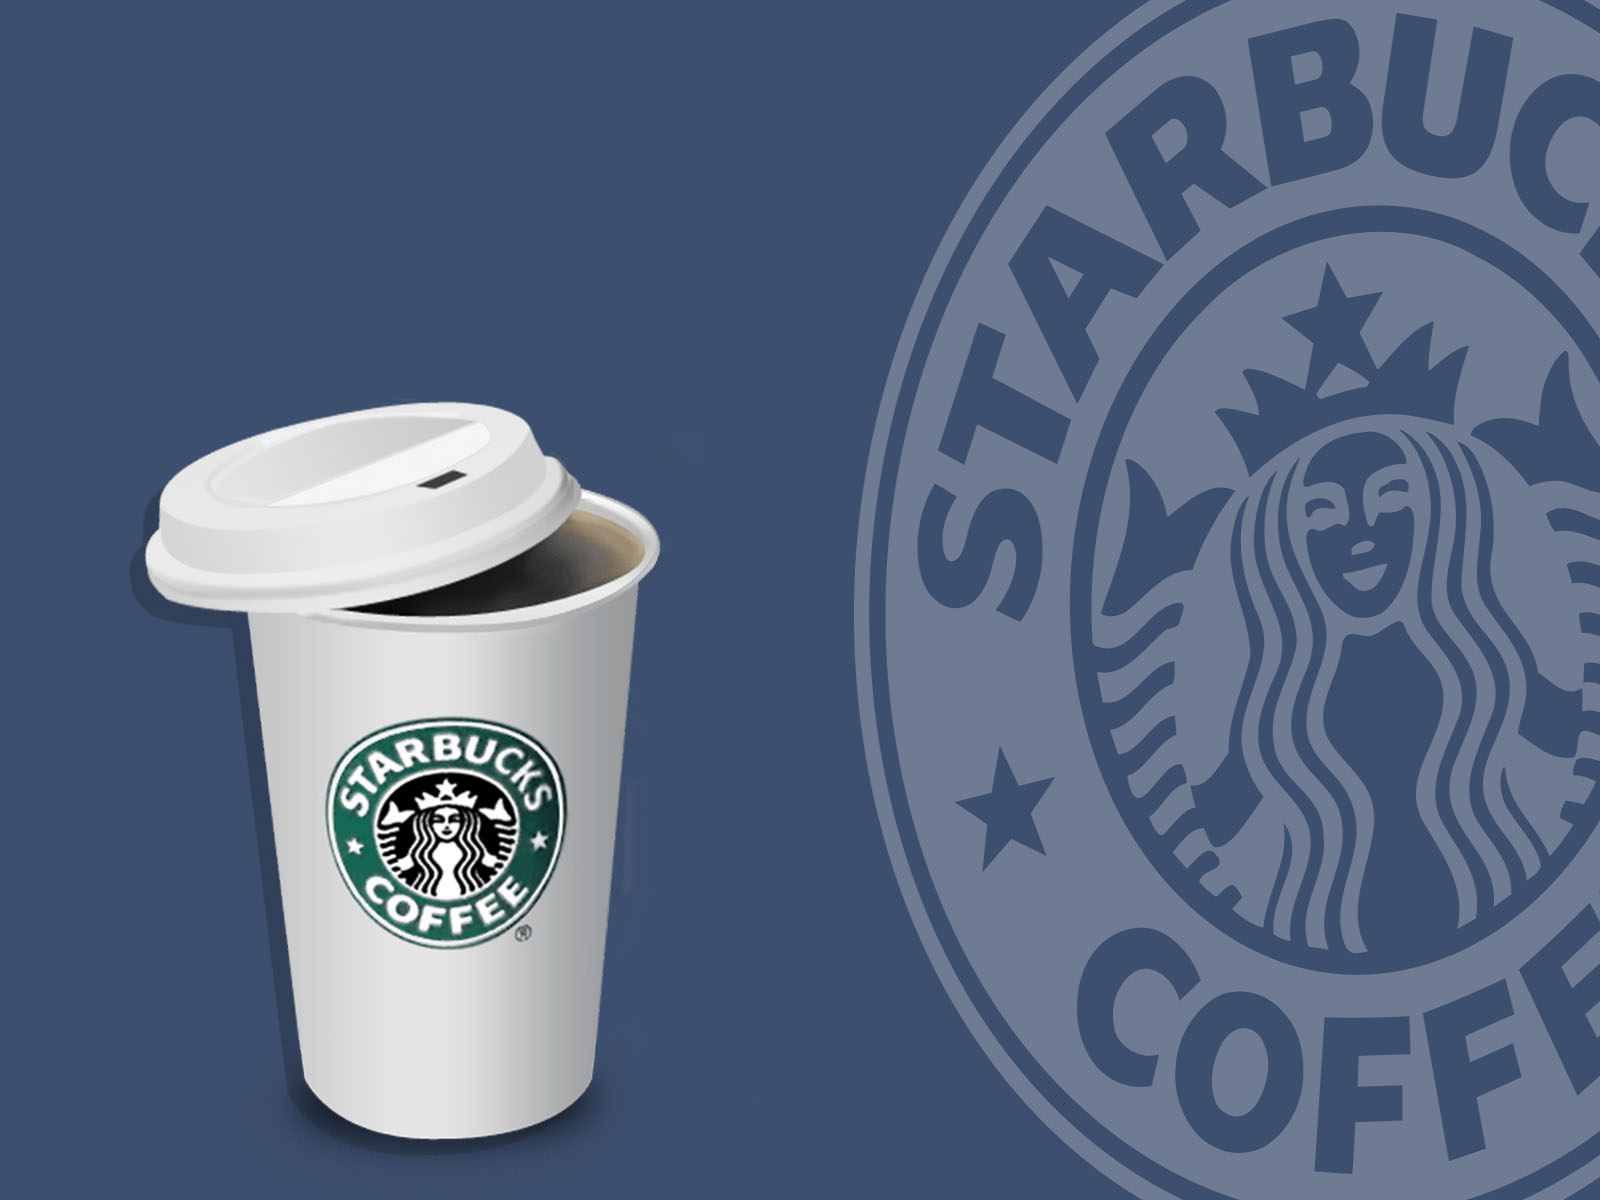 Starbucks Coffee Powerpoint Templates